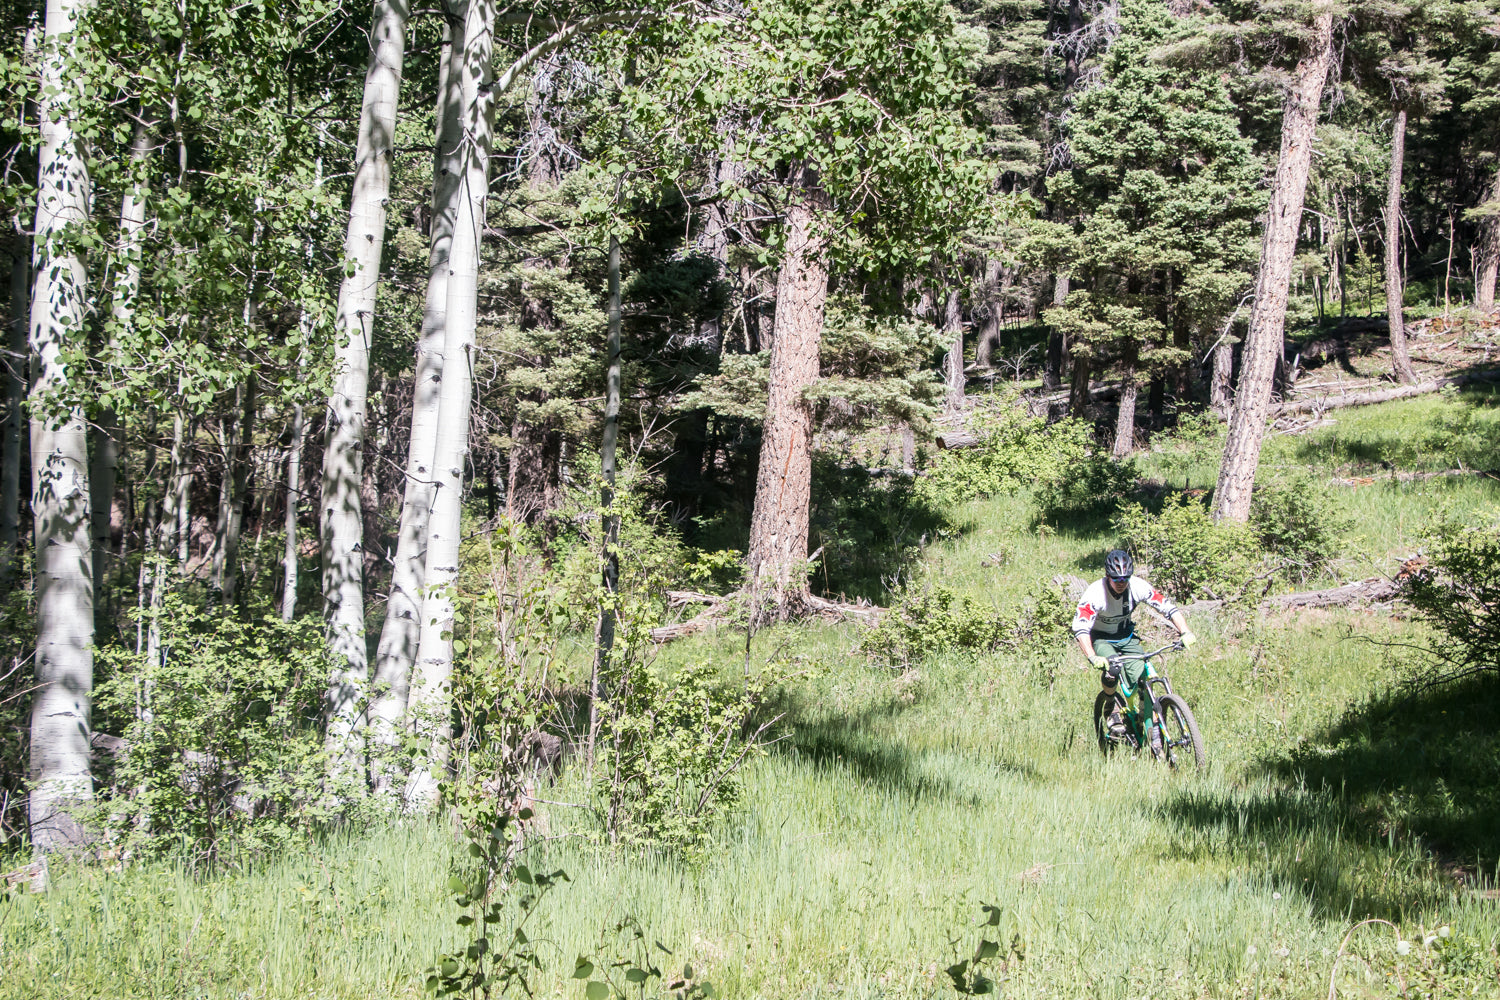 Chasing Epic MTB Adventures: Angel Fire, New Mexico